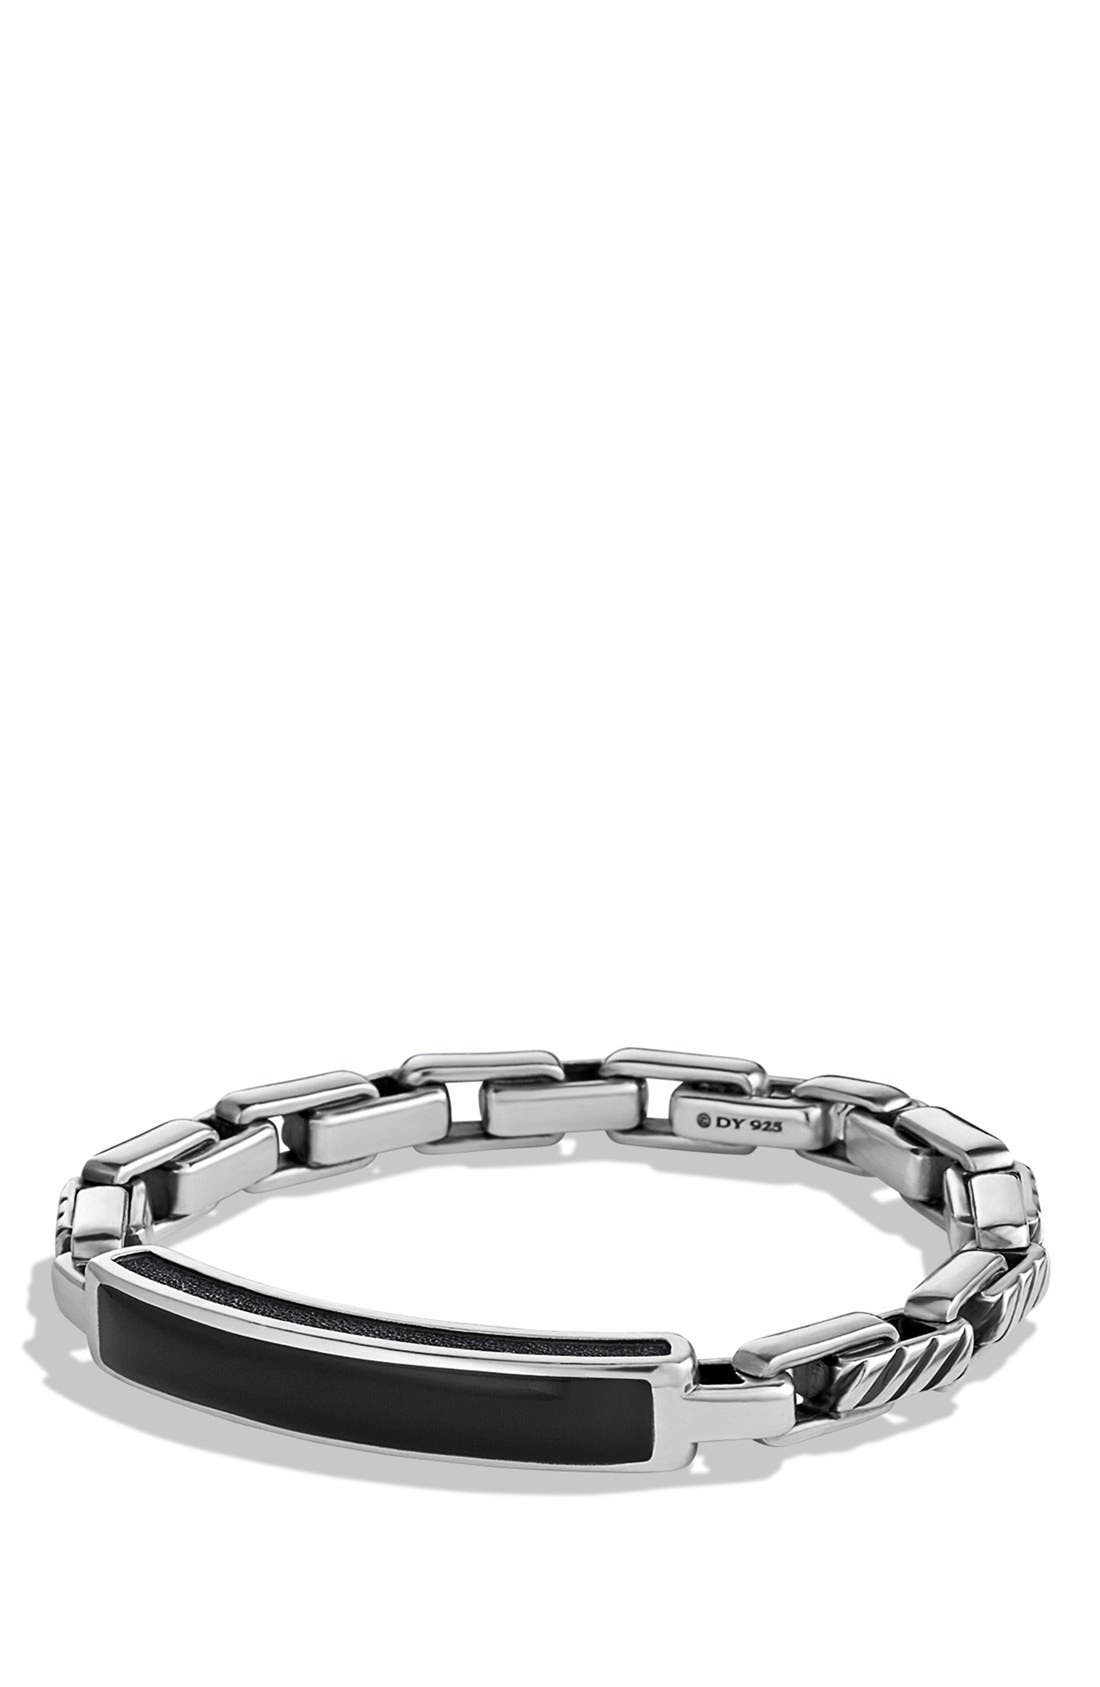 David Yurman ' Modern Cable' ID Bracelet